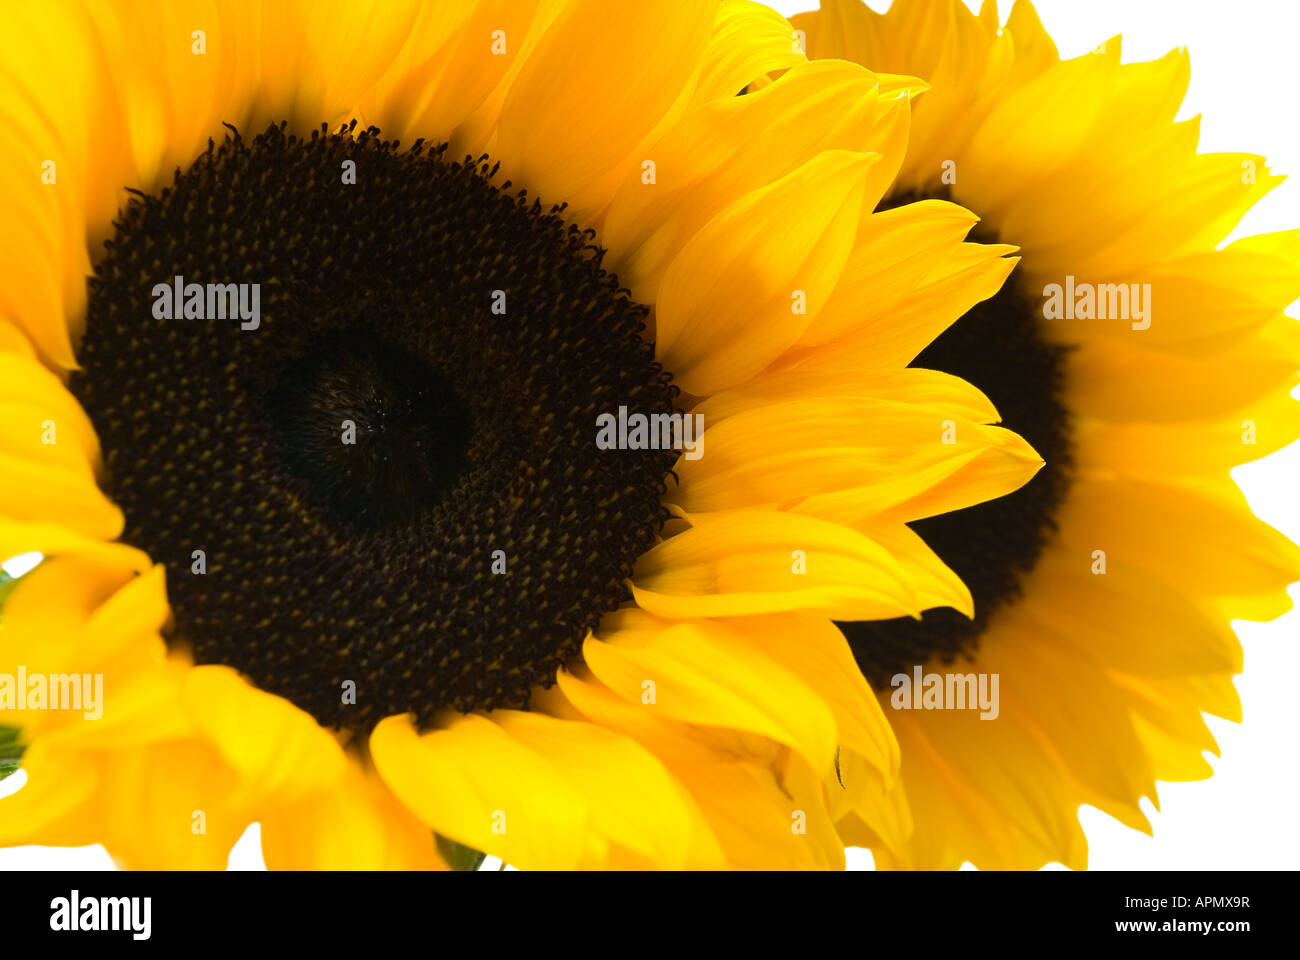 The Sunflower - Stock Image